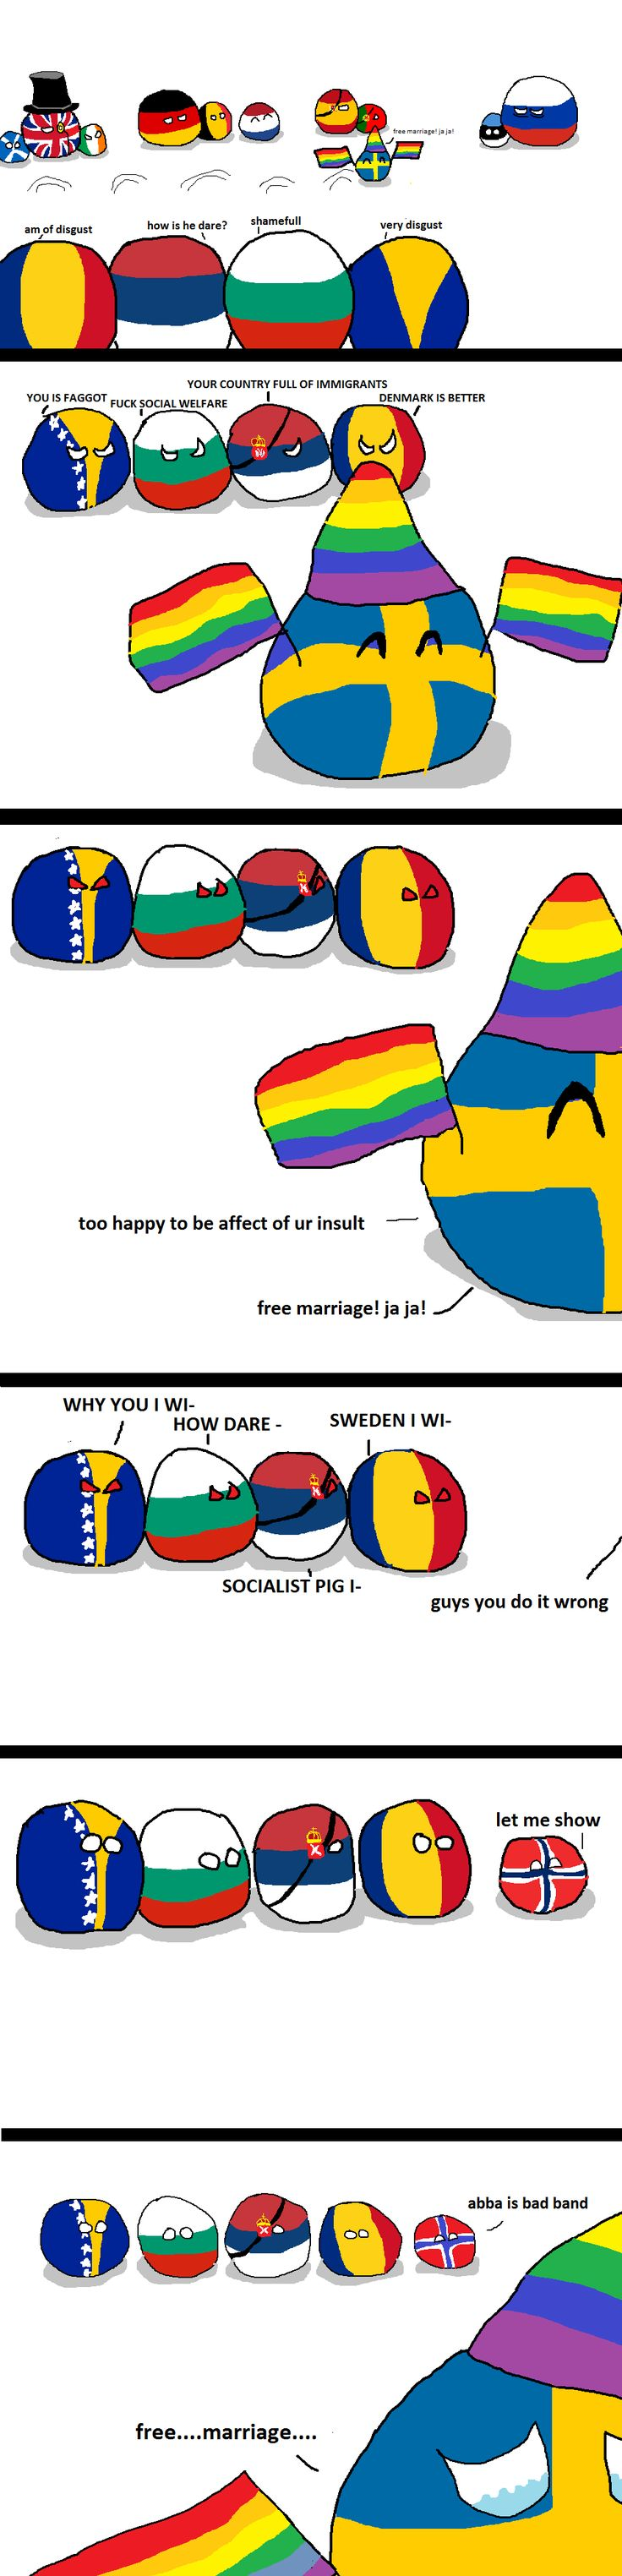 Free marriage via reddit